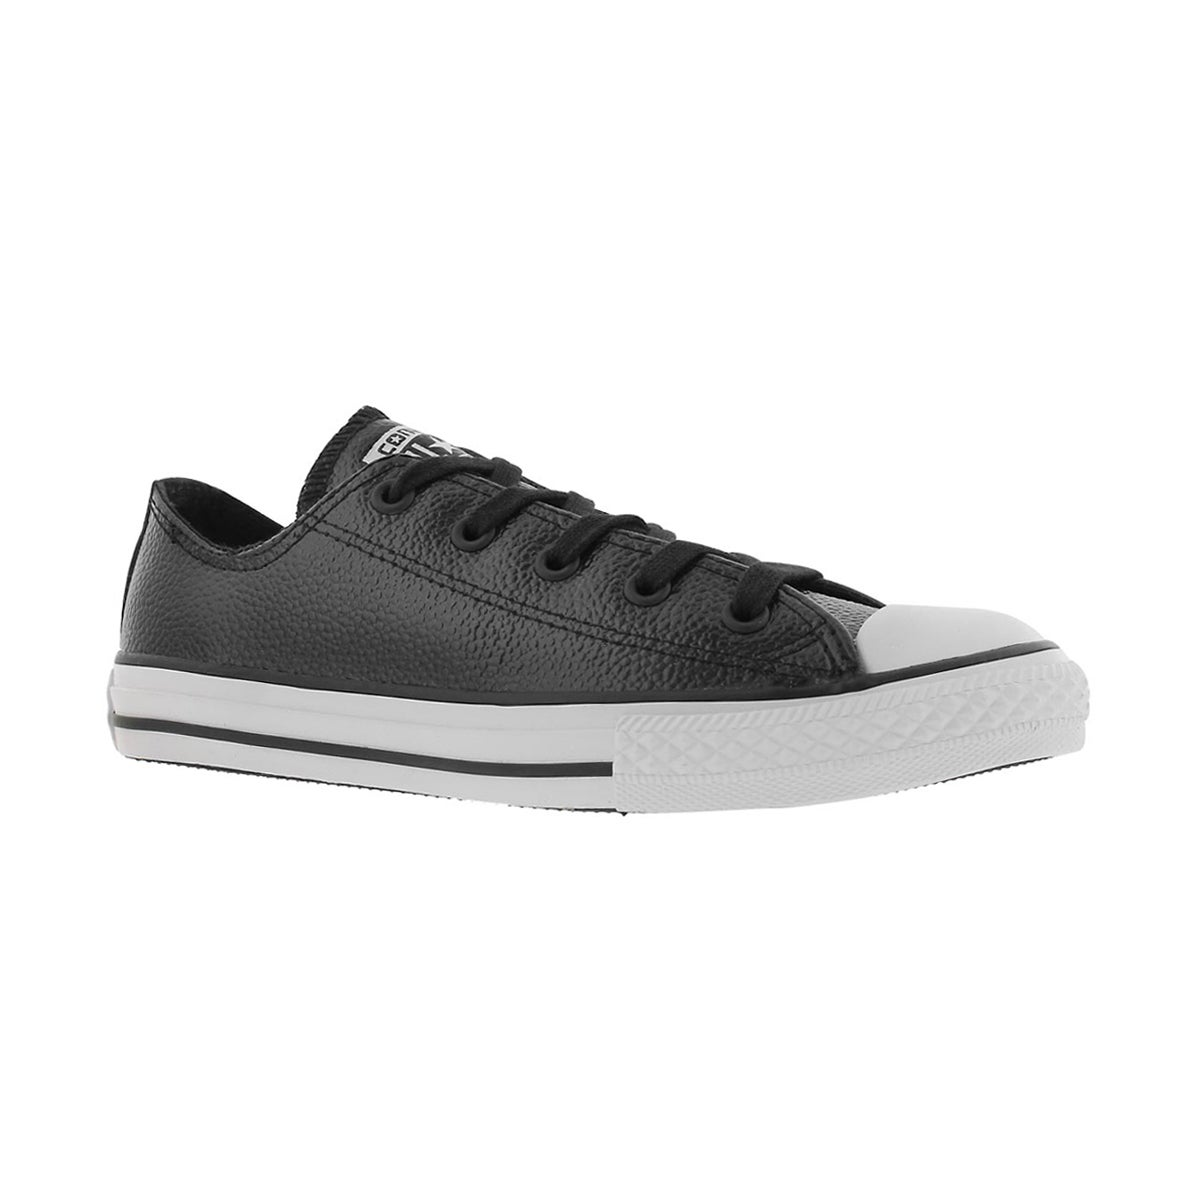 Kids' CT ALL STAR OX black/white sneakers